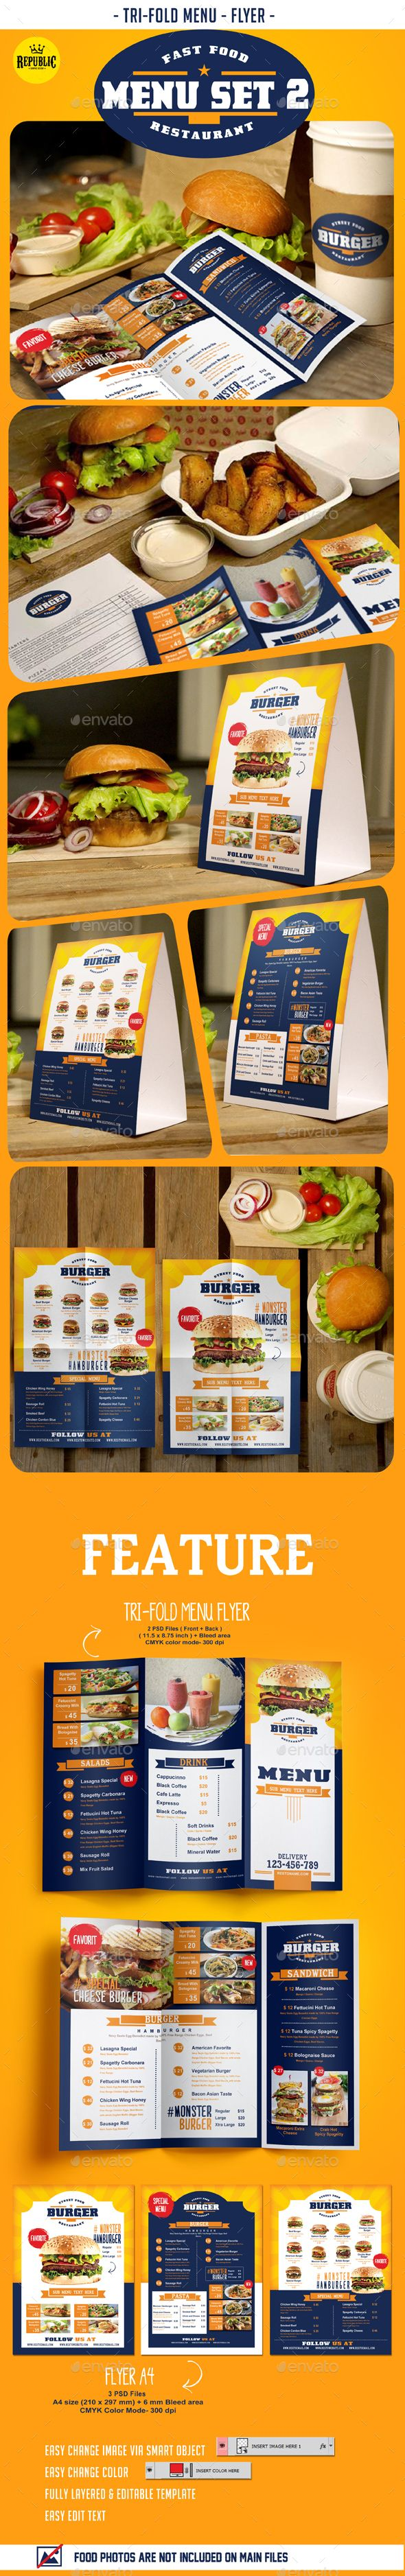 Fast Food Menu Set 2